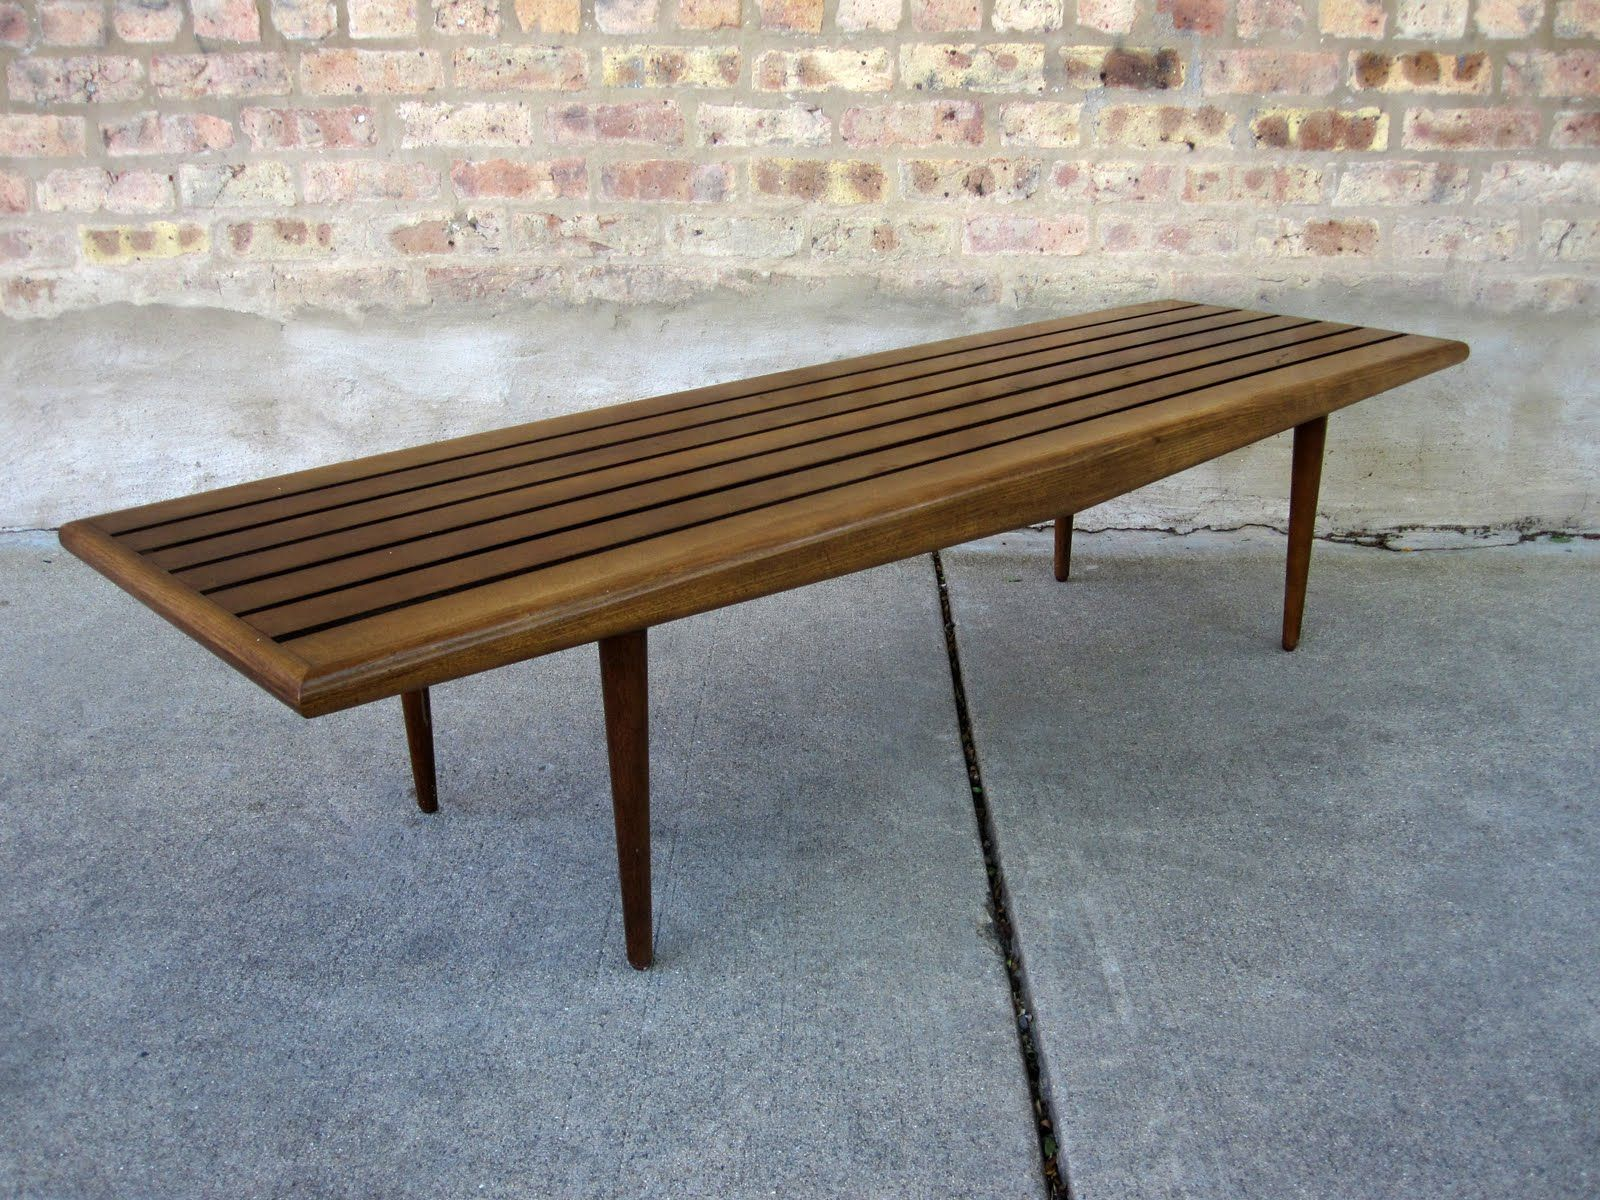 best tables and benches images on pinterest  furniture ideas  - circa midcentury 'danish modern' slat bench  coffee table (want for myhome one day)